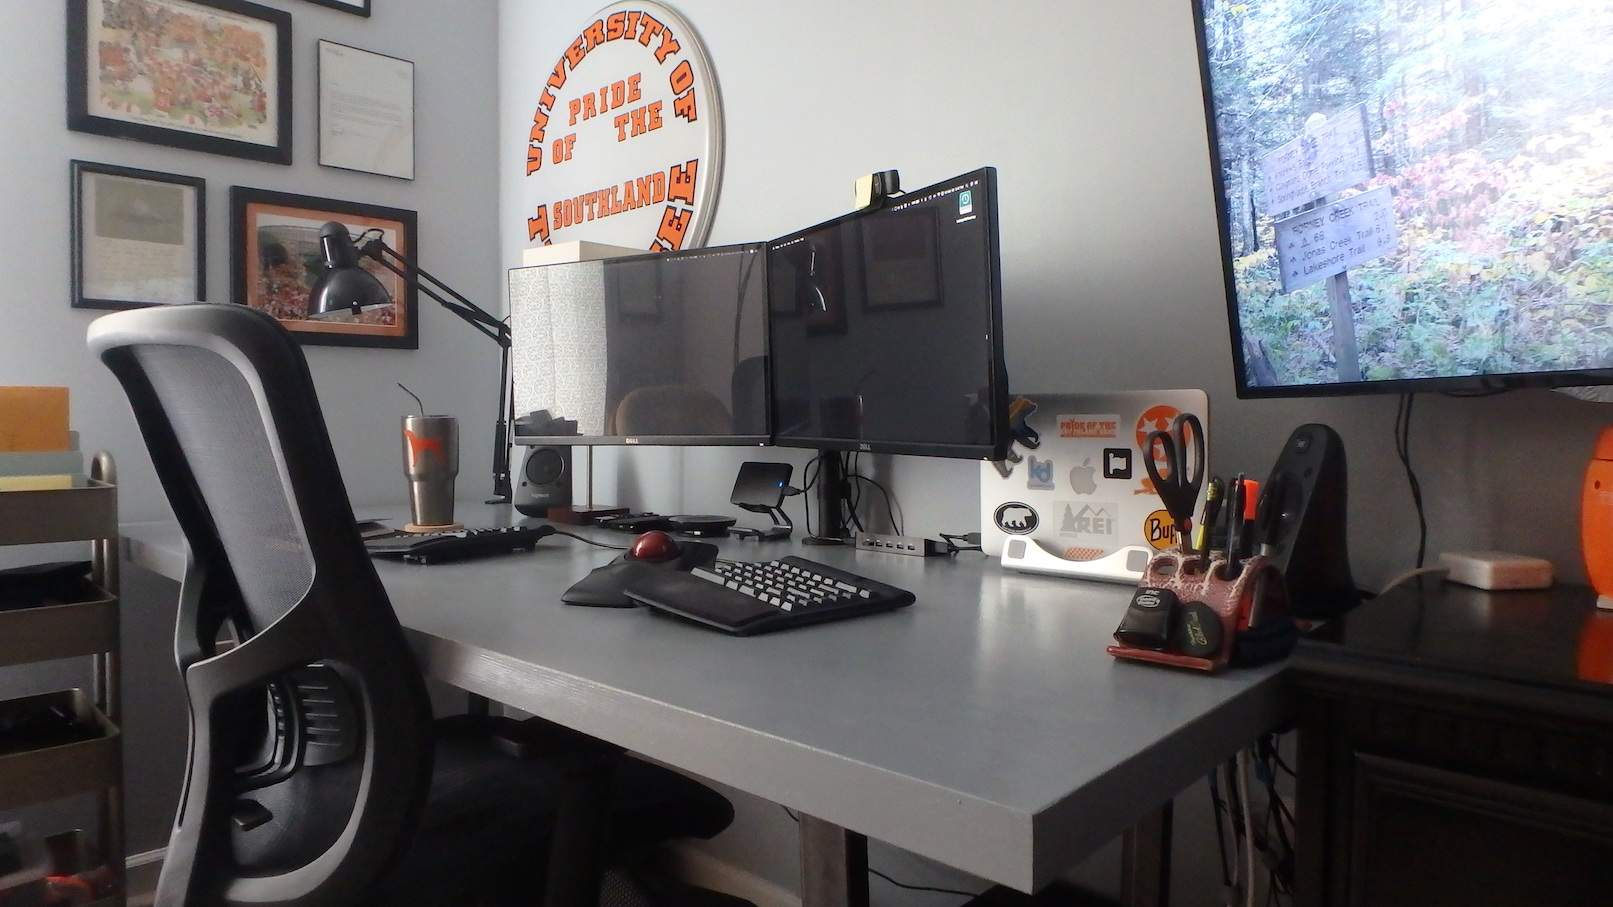 Closer picture of my desk